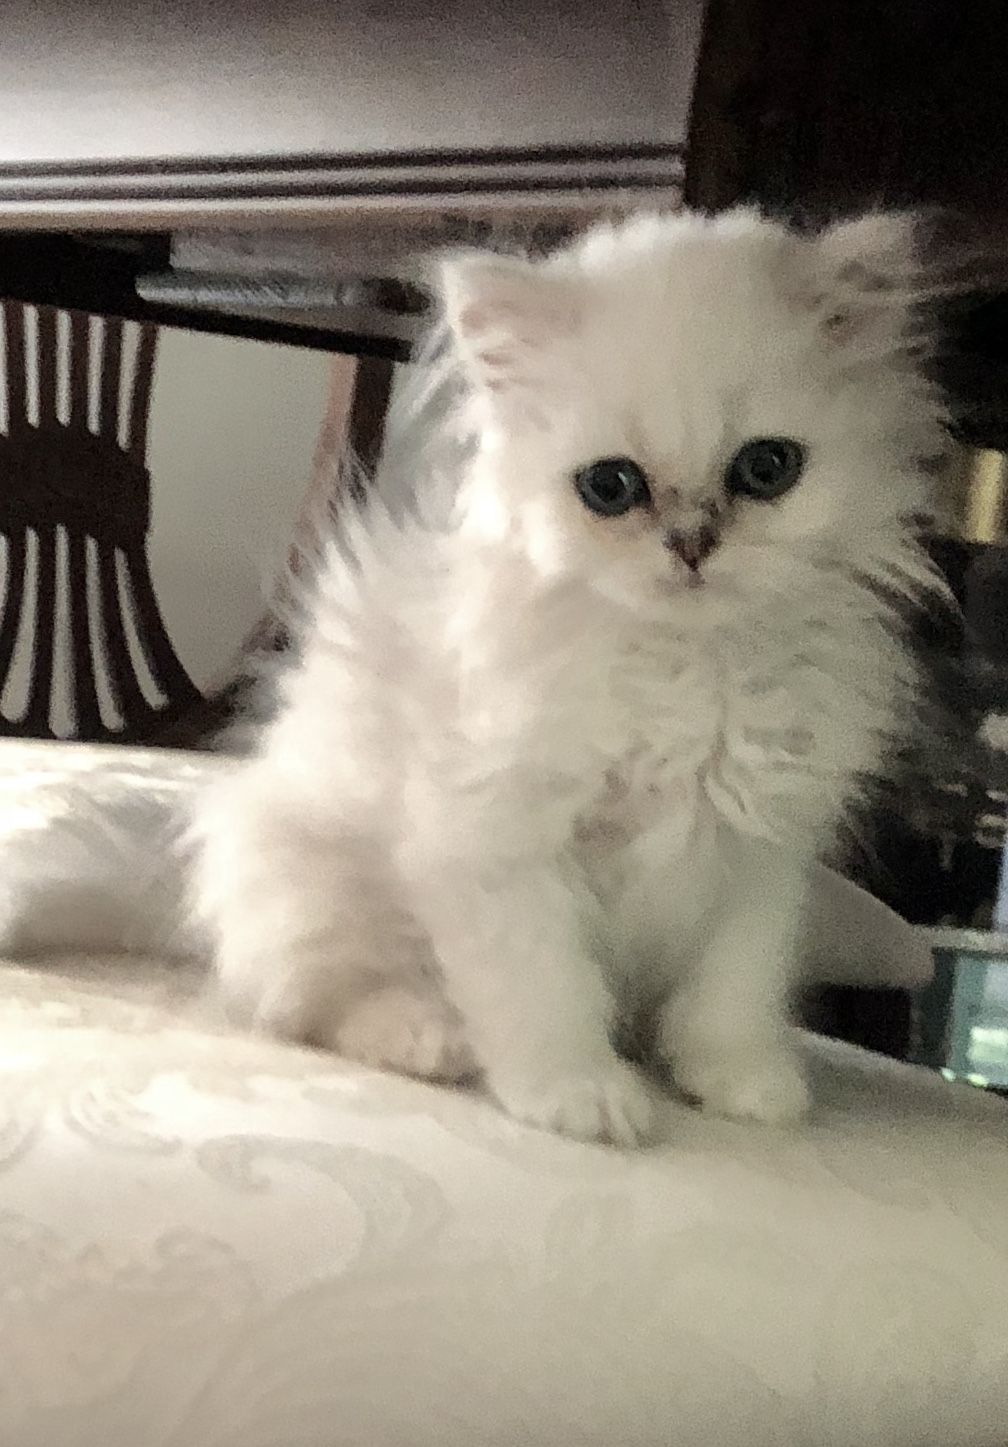 Barney Is Such A Tiny Little Guy His Adult Weight Should Be Around 5 Pounds He Has Big Green Eyes And A Lit Persian Cat Persian Cats For Sale Cats For Sale